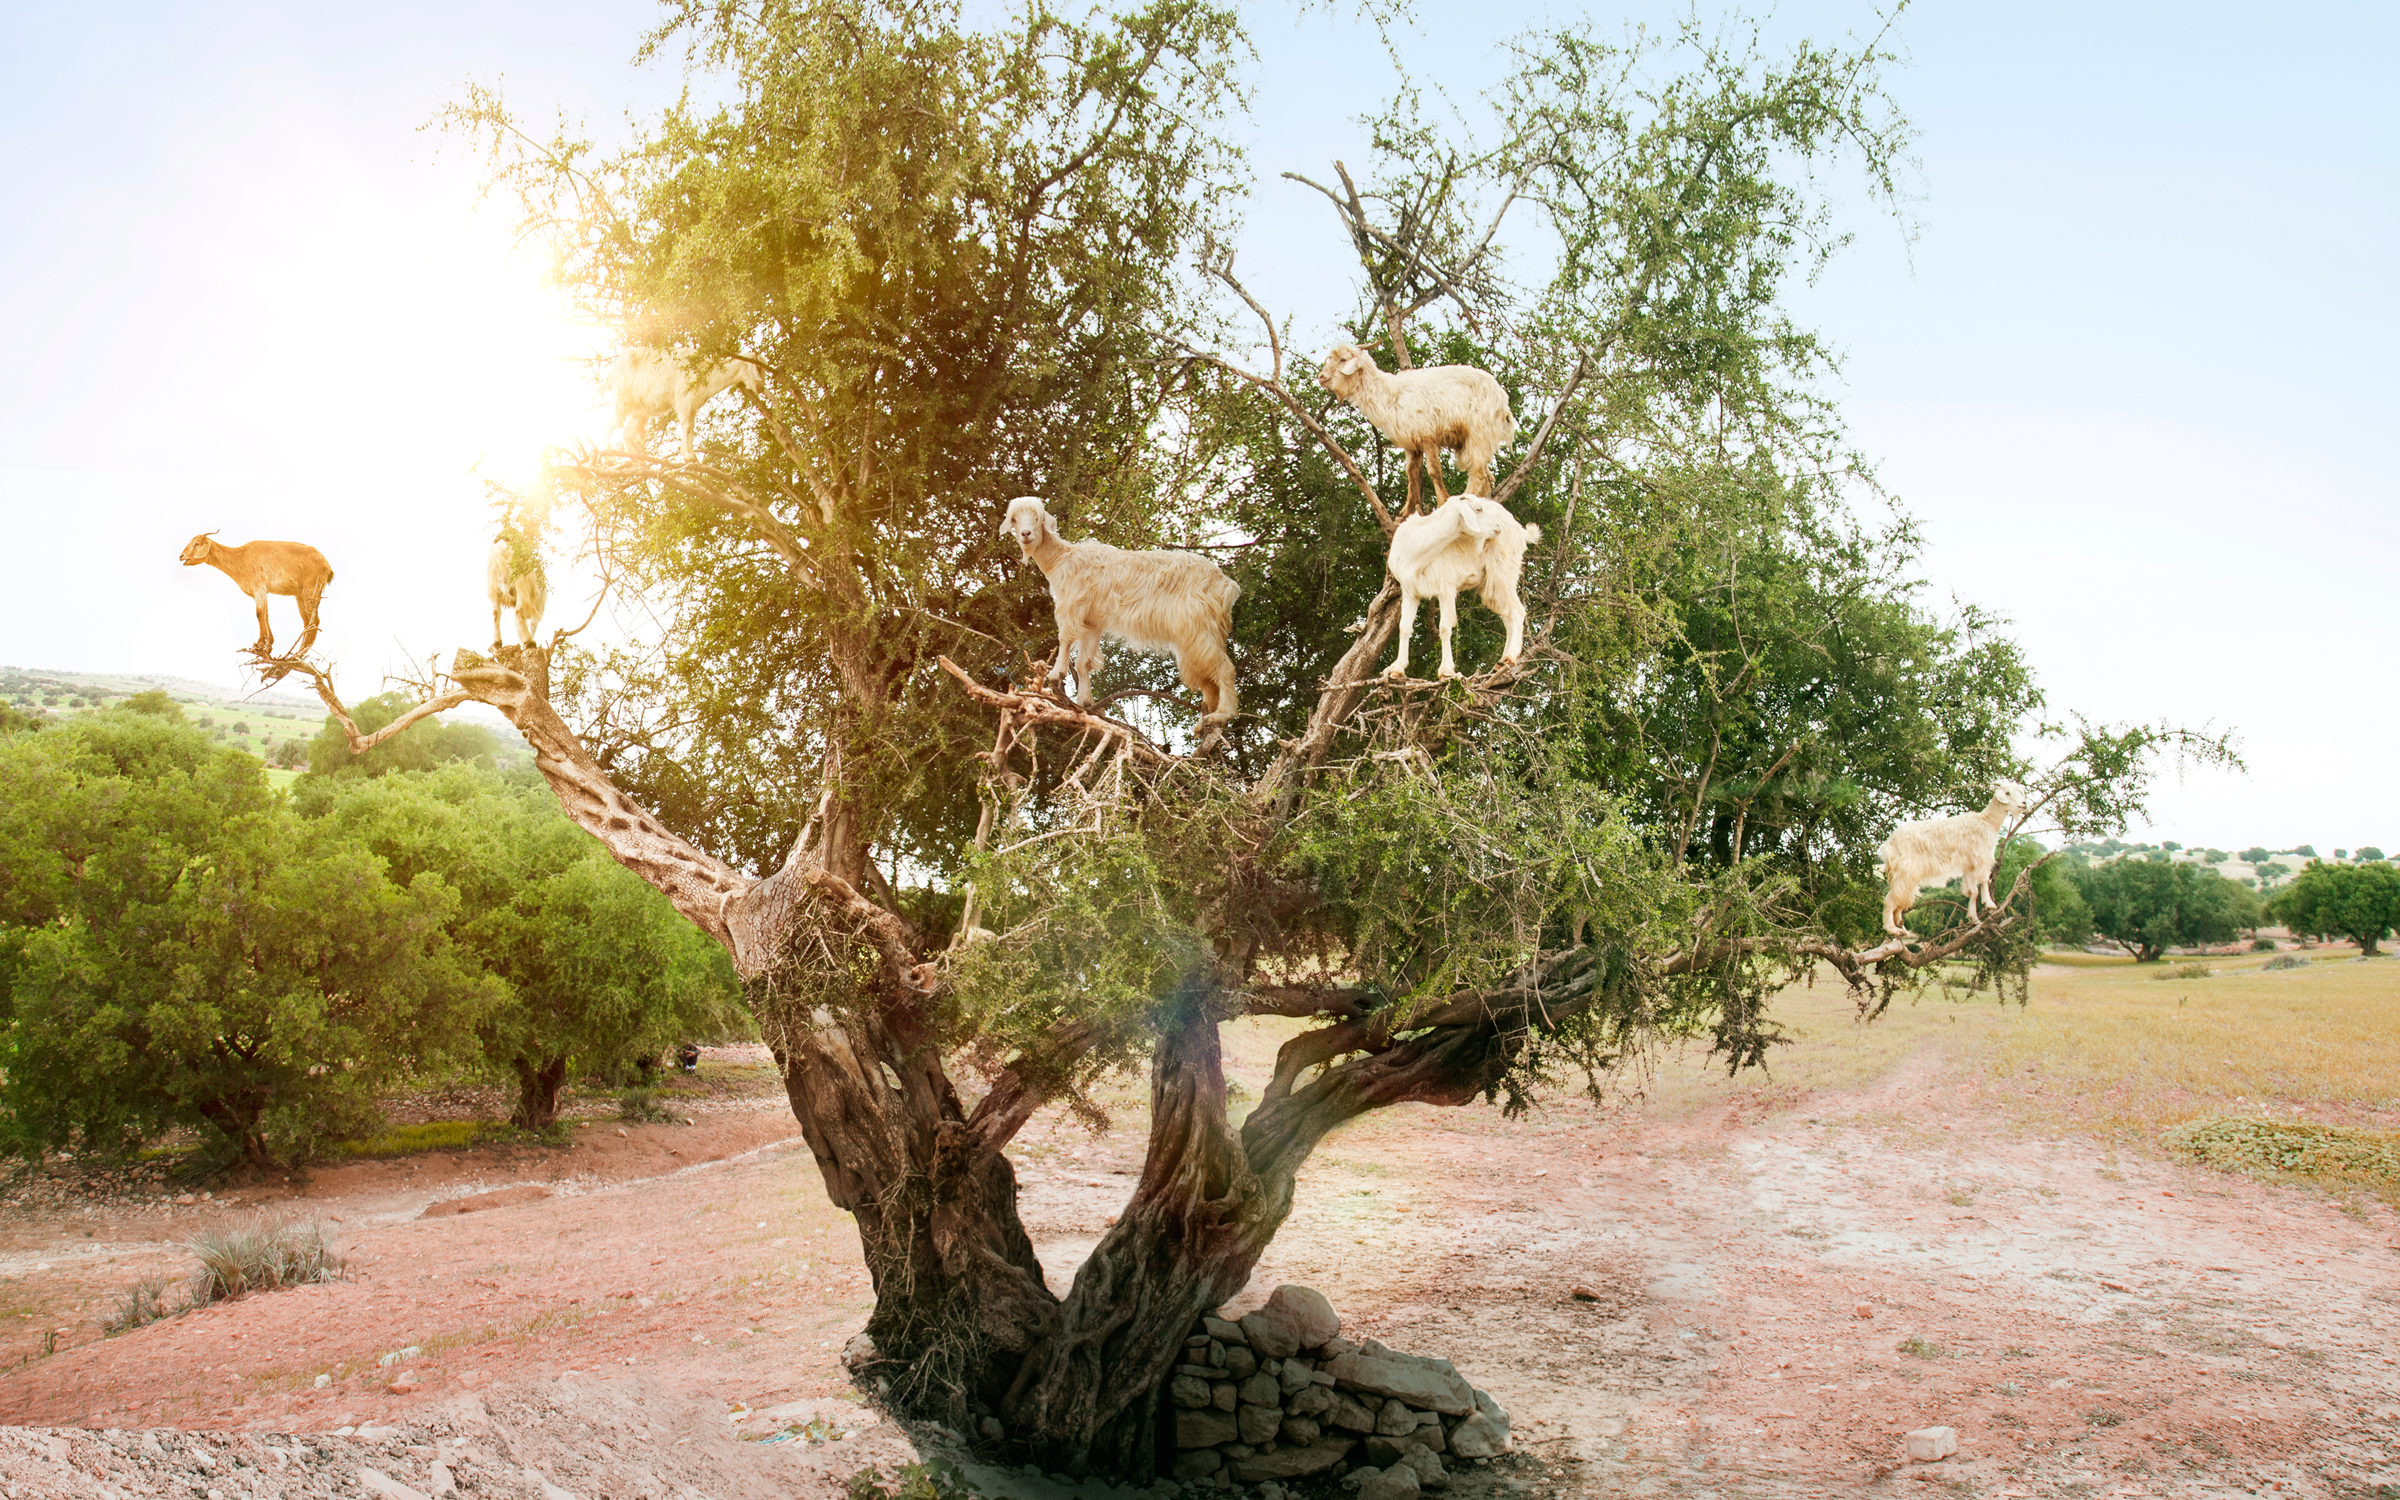 Moroccan Tree Goats Have Stolen Our Hearts and Our Fruit